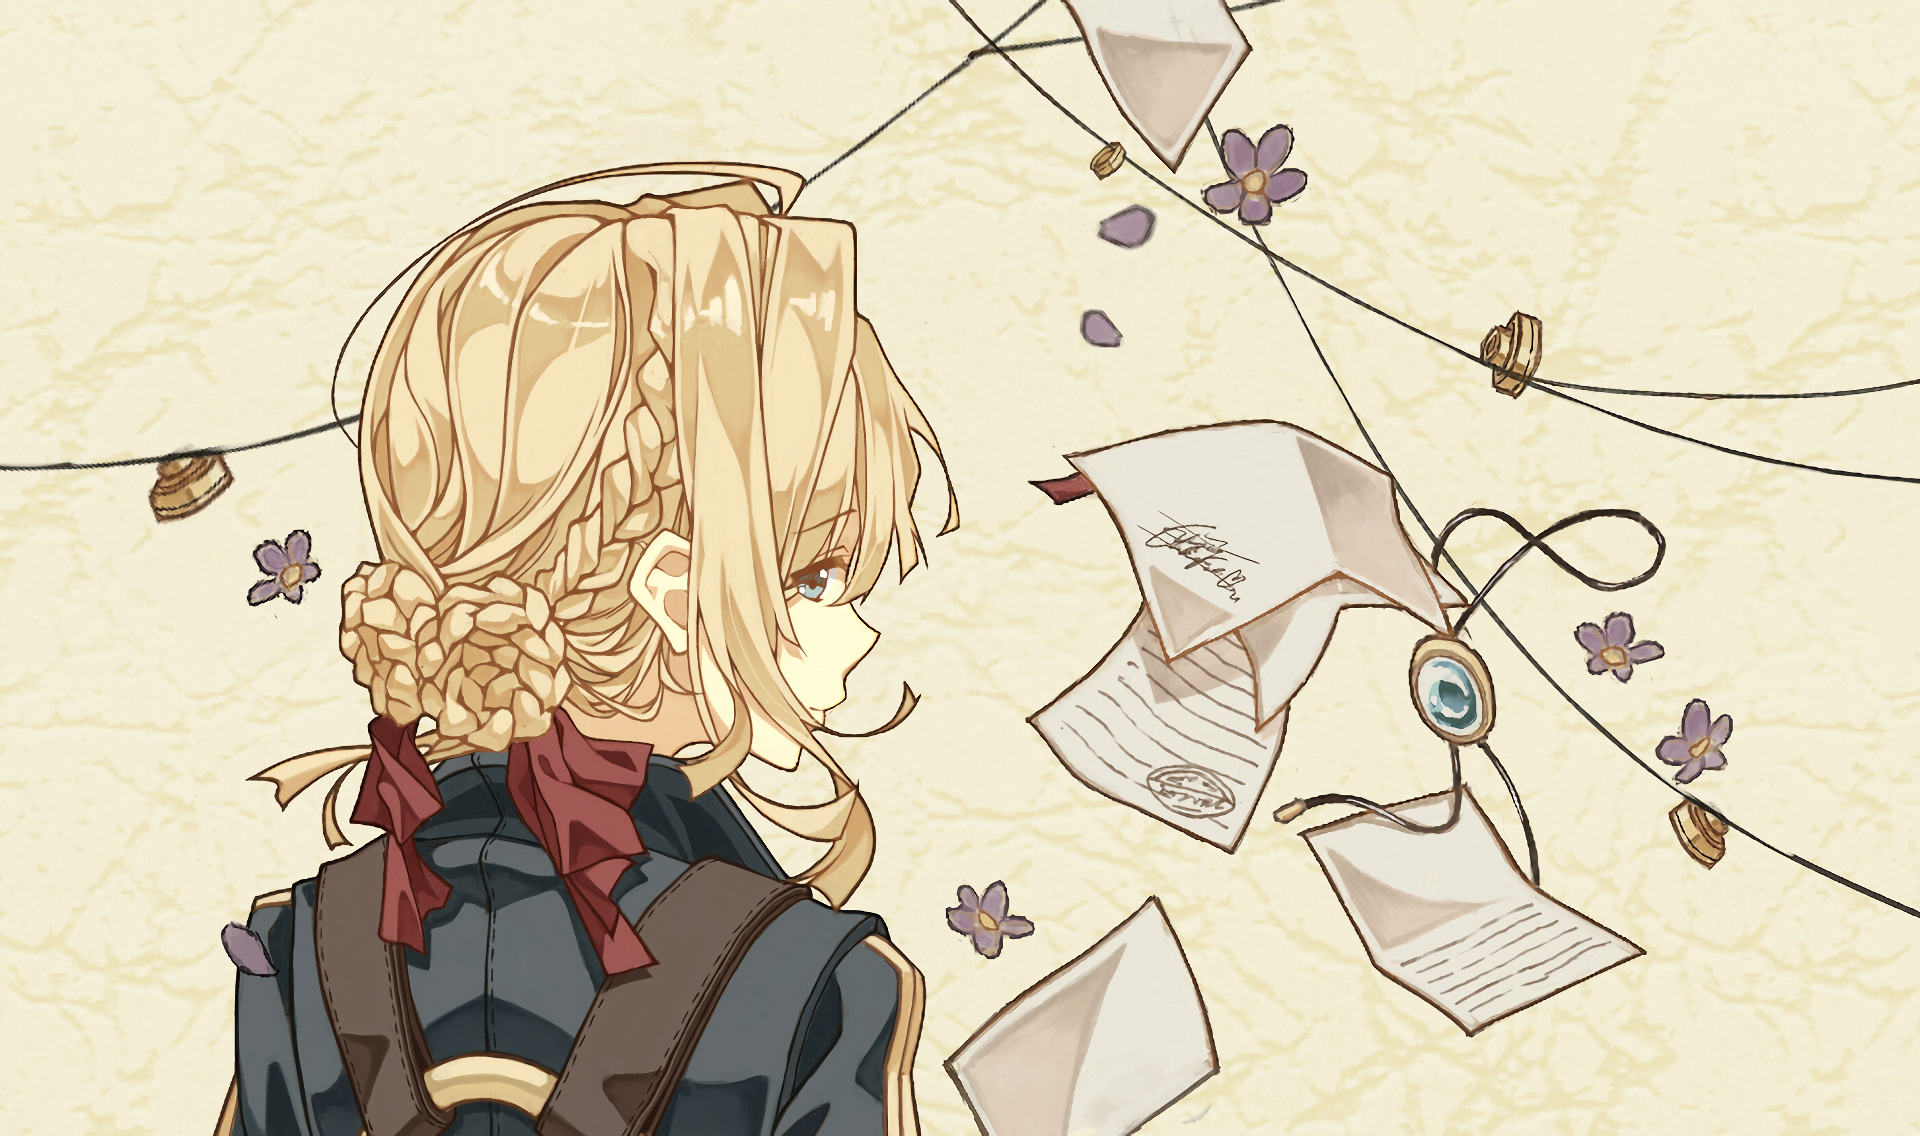 Character Design Background : Violet evergarden full hd wallpaper and background image